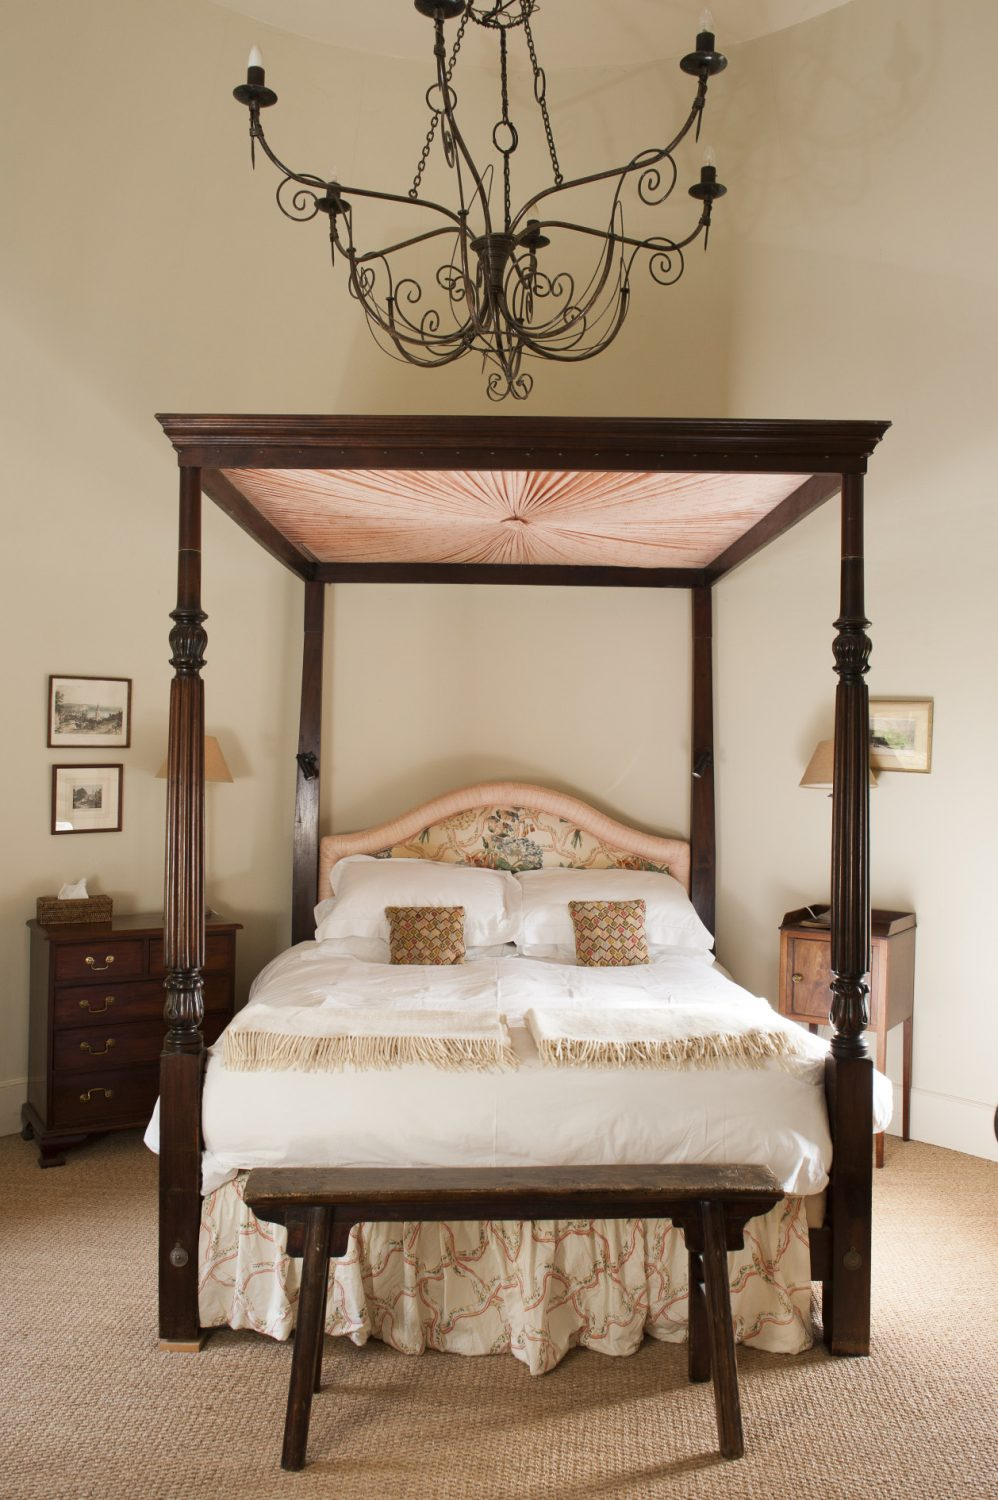 The four-poster bed belonged to Ally's parents and the wire-work chandelier was bought in Africa